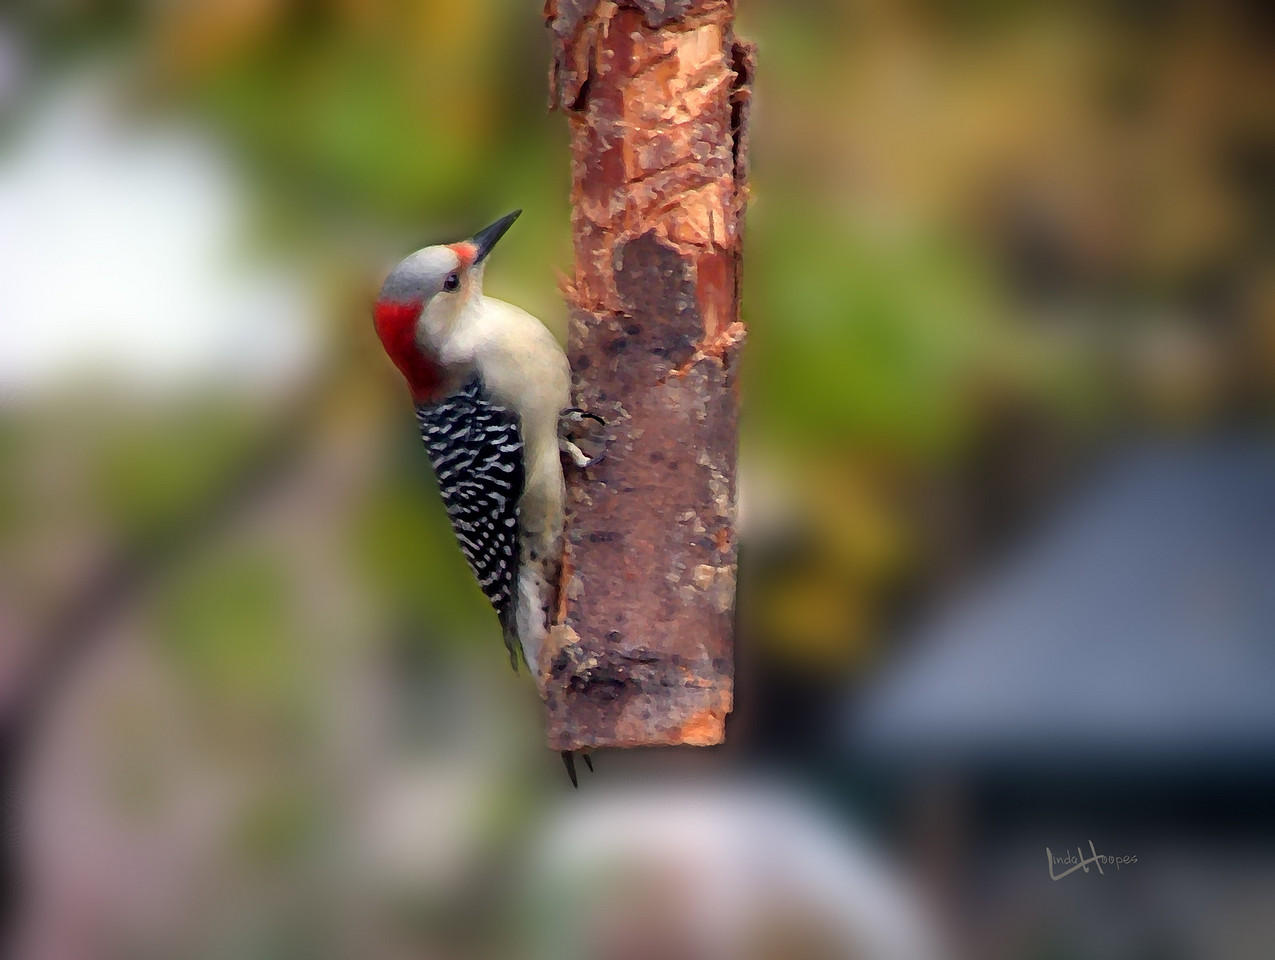 Female redbreasted woodpecker delights over peanutbutter smeared on a log